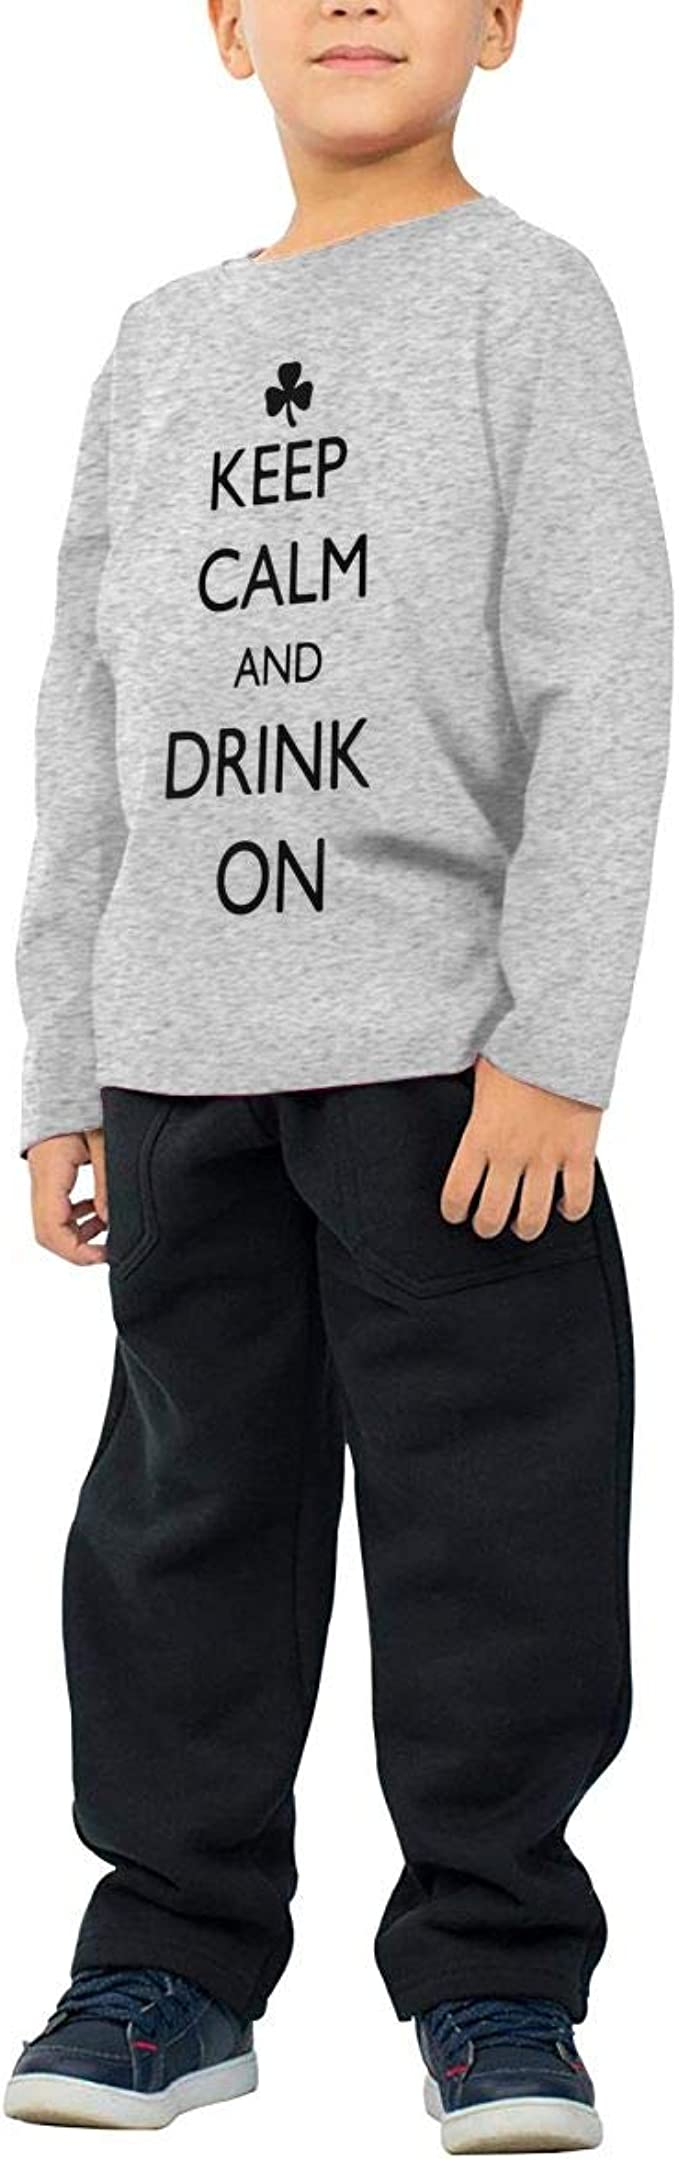 Baby Boys Kids Keep Calm and Drink On St Patricks Day ComfortSoft Long Sleeve Shirt